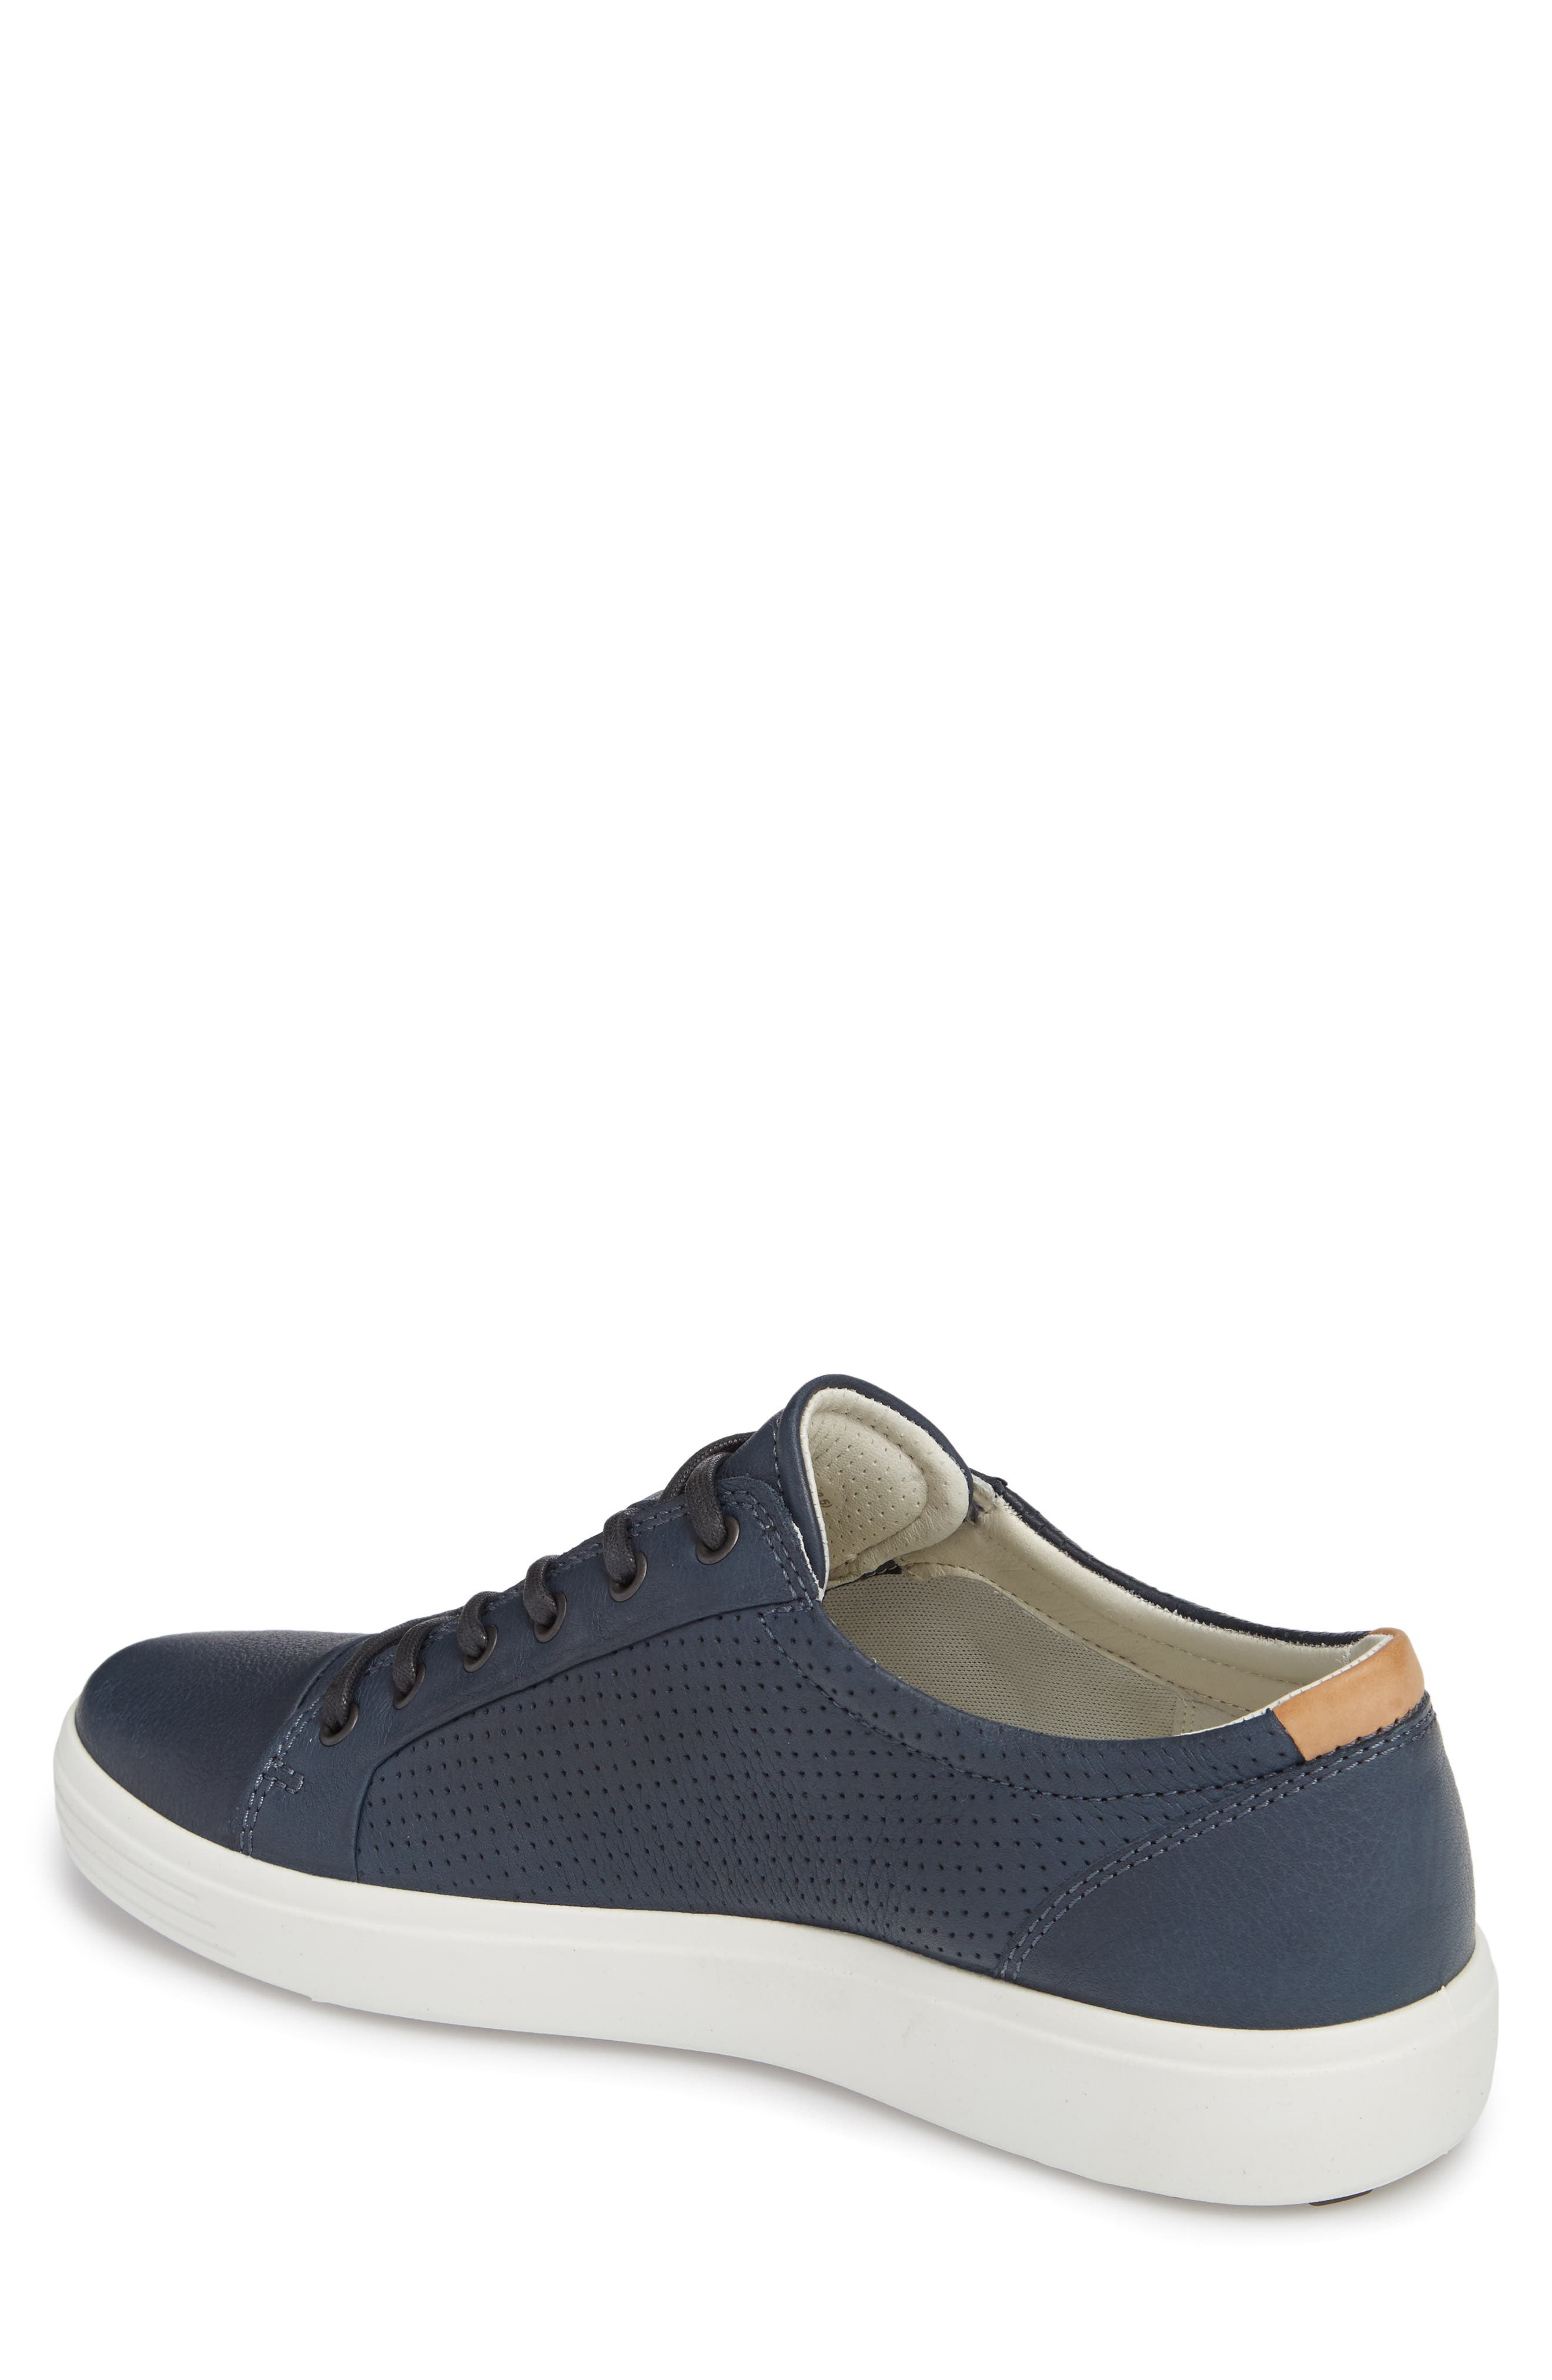 ECCO, Soft 7 Perf Sneaker, Alternate thumbnail 2, color, NAVY LEATHER